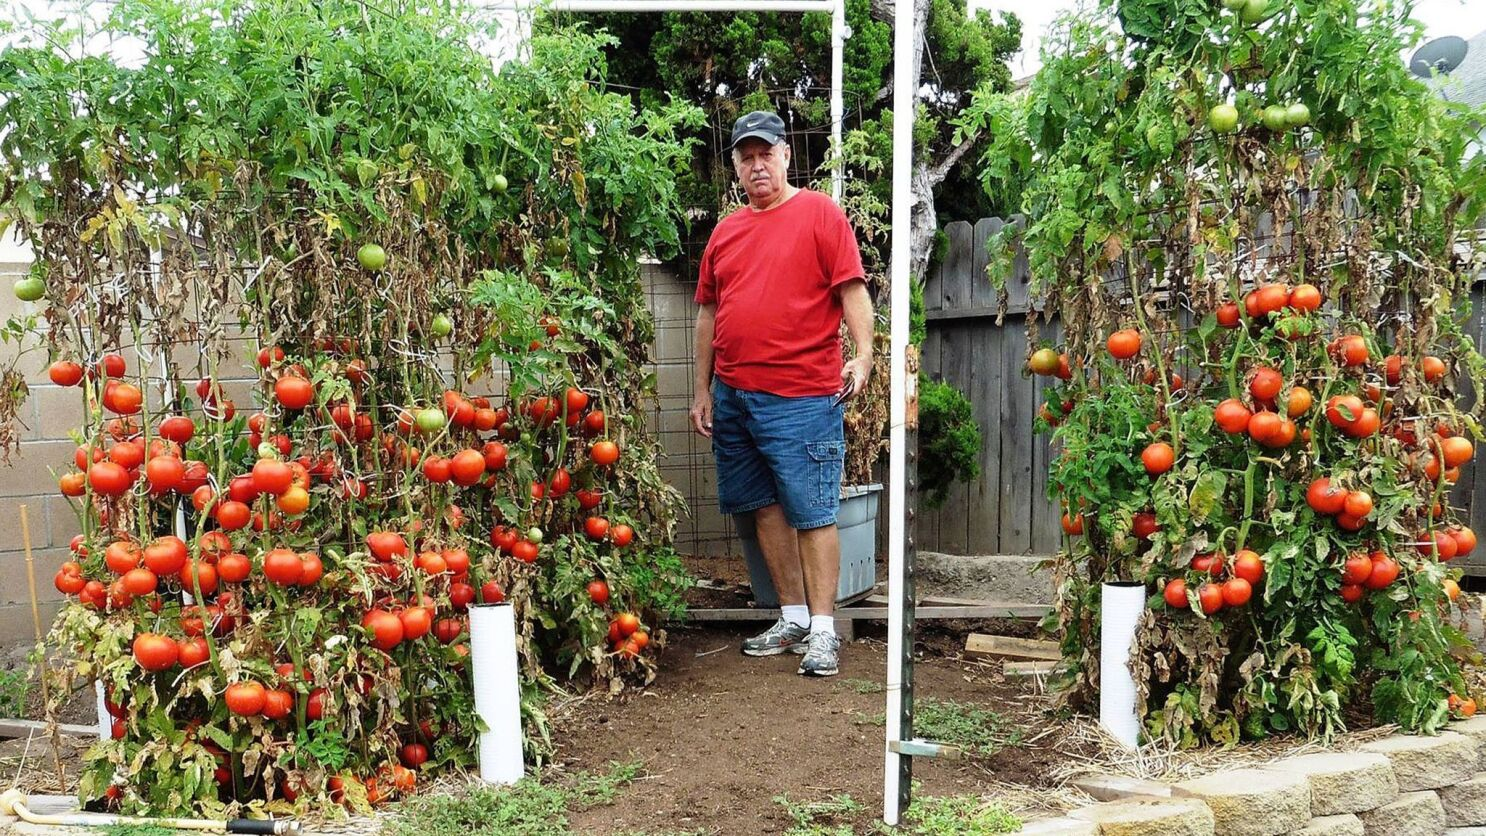 Want a bumper crop of tomatoes? Listen to this guy - Los Angeles Times